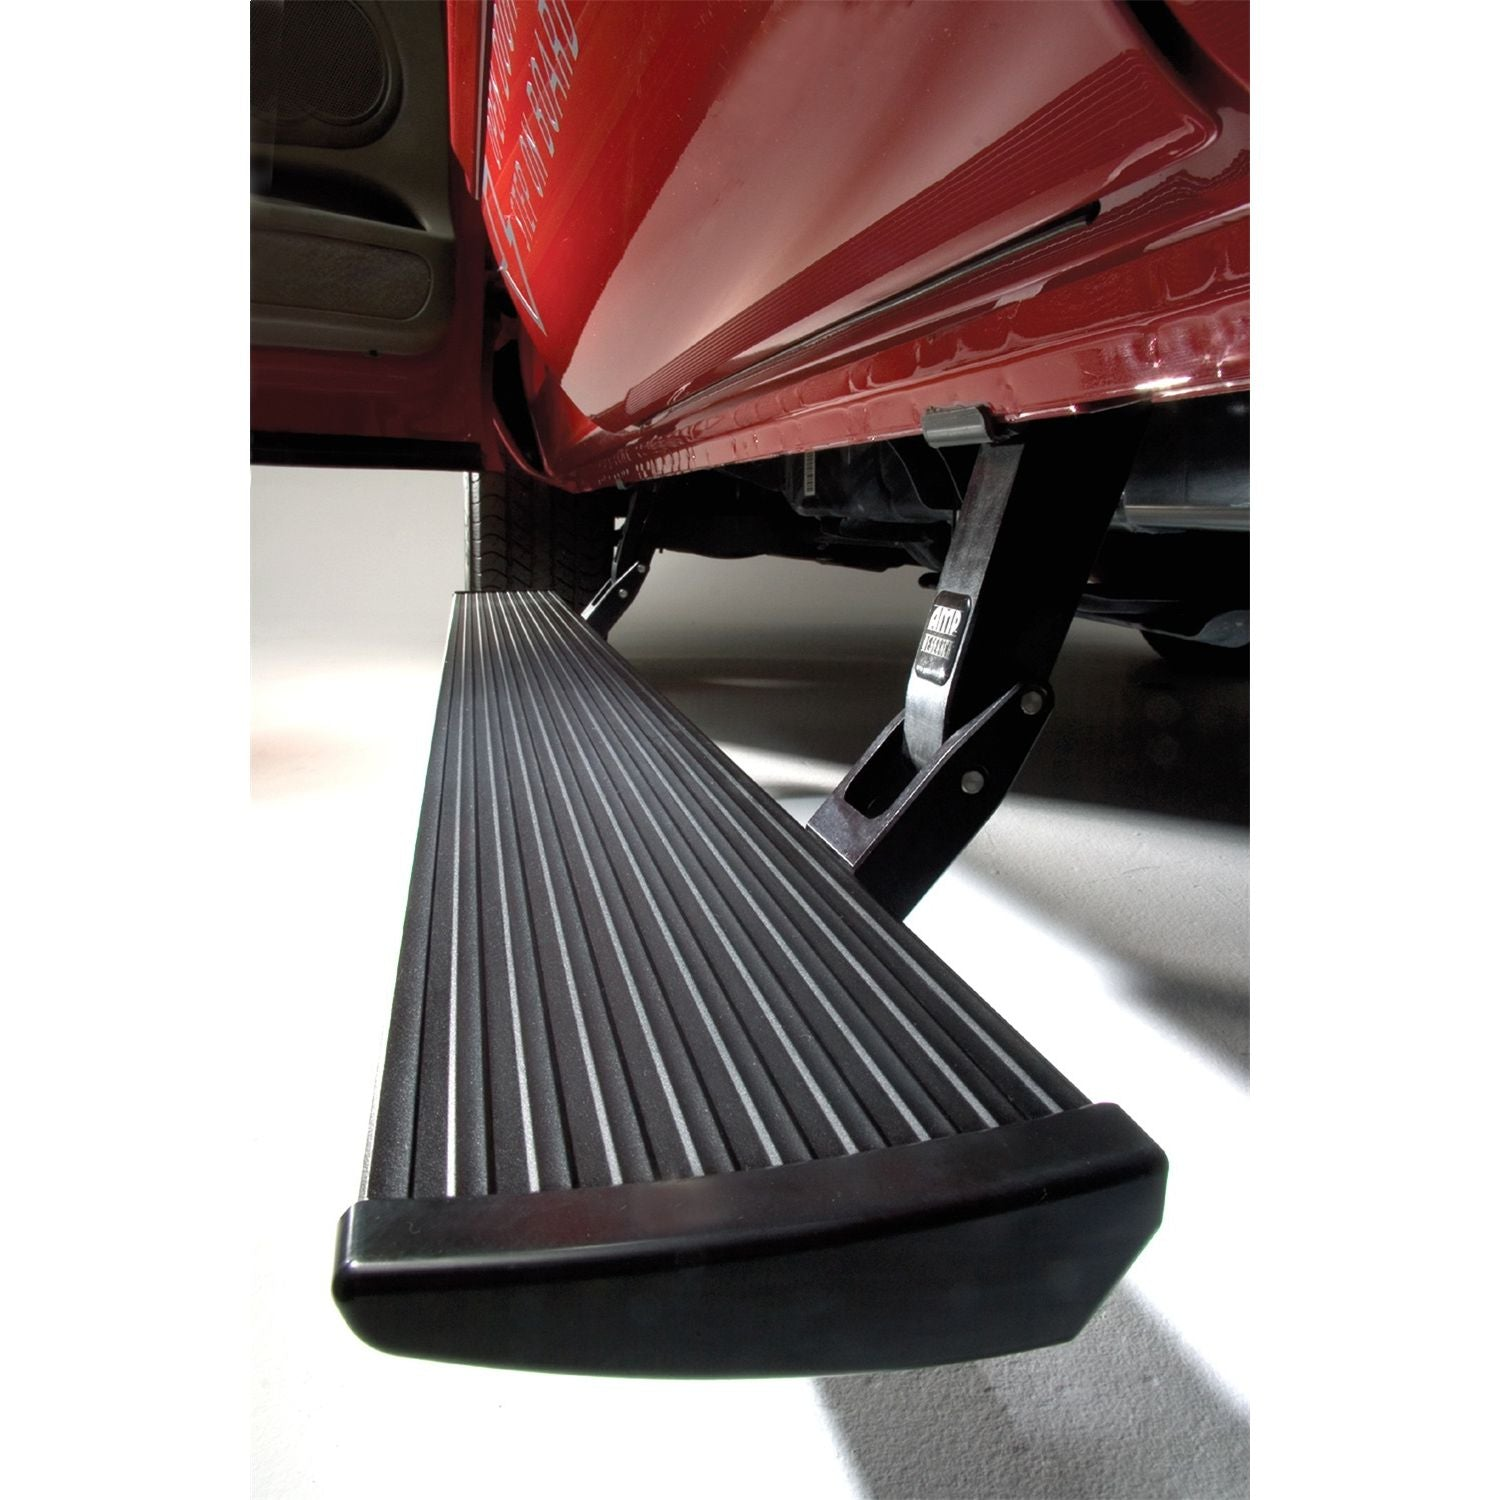 AMP Research PowerStep Running Boards for 2016-2020 Toyota Tacoma Double and Access Cab - 75162-01A